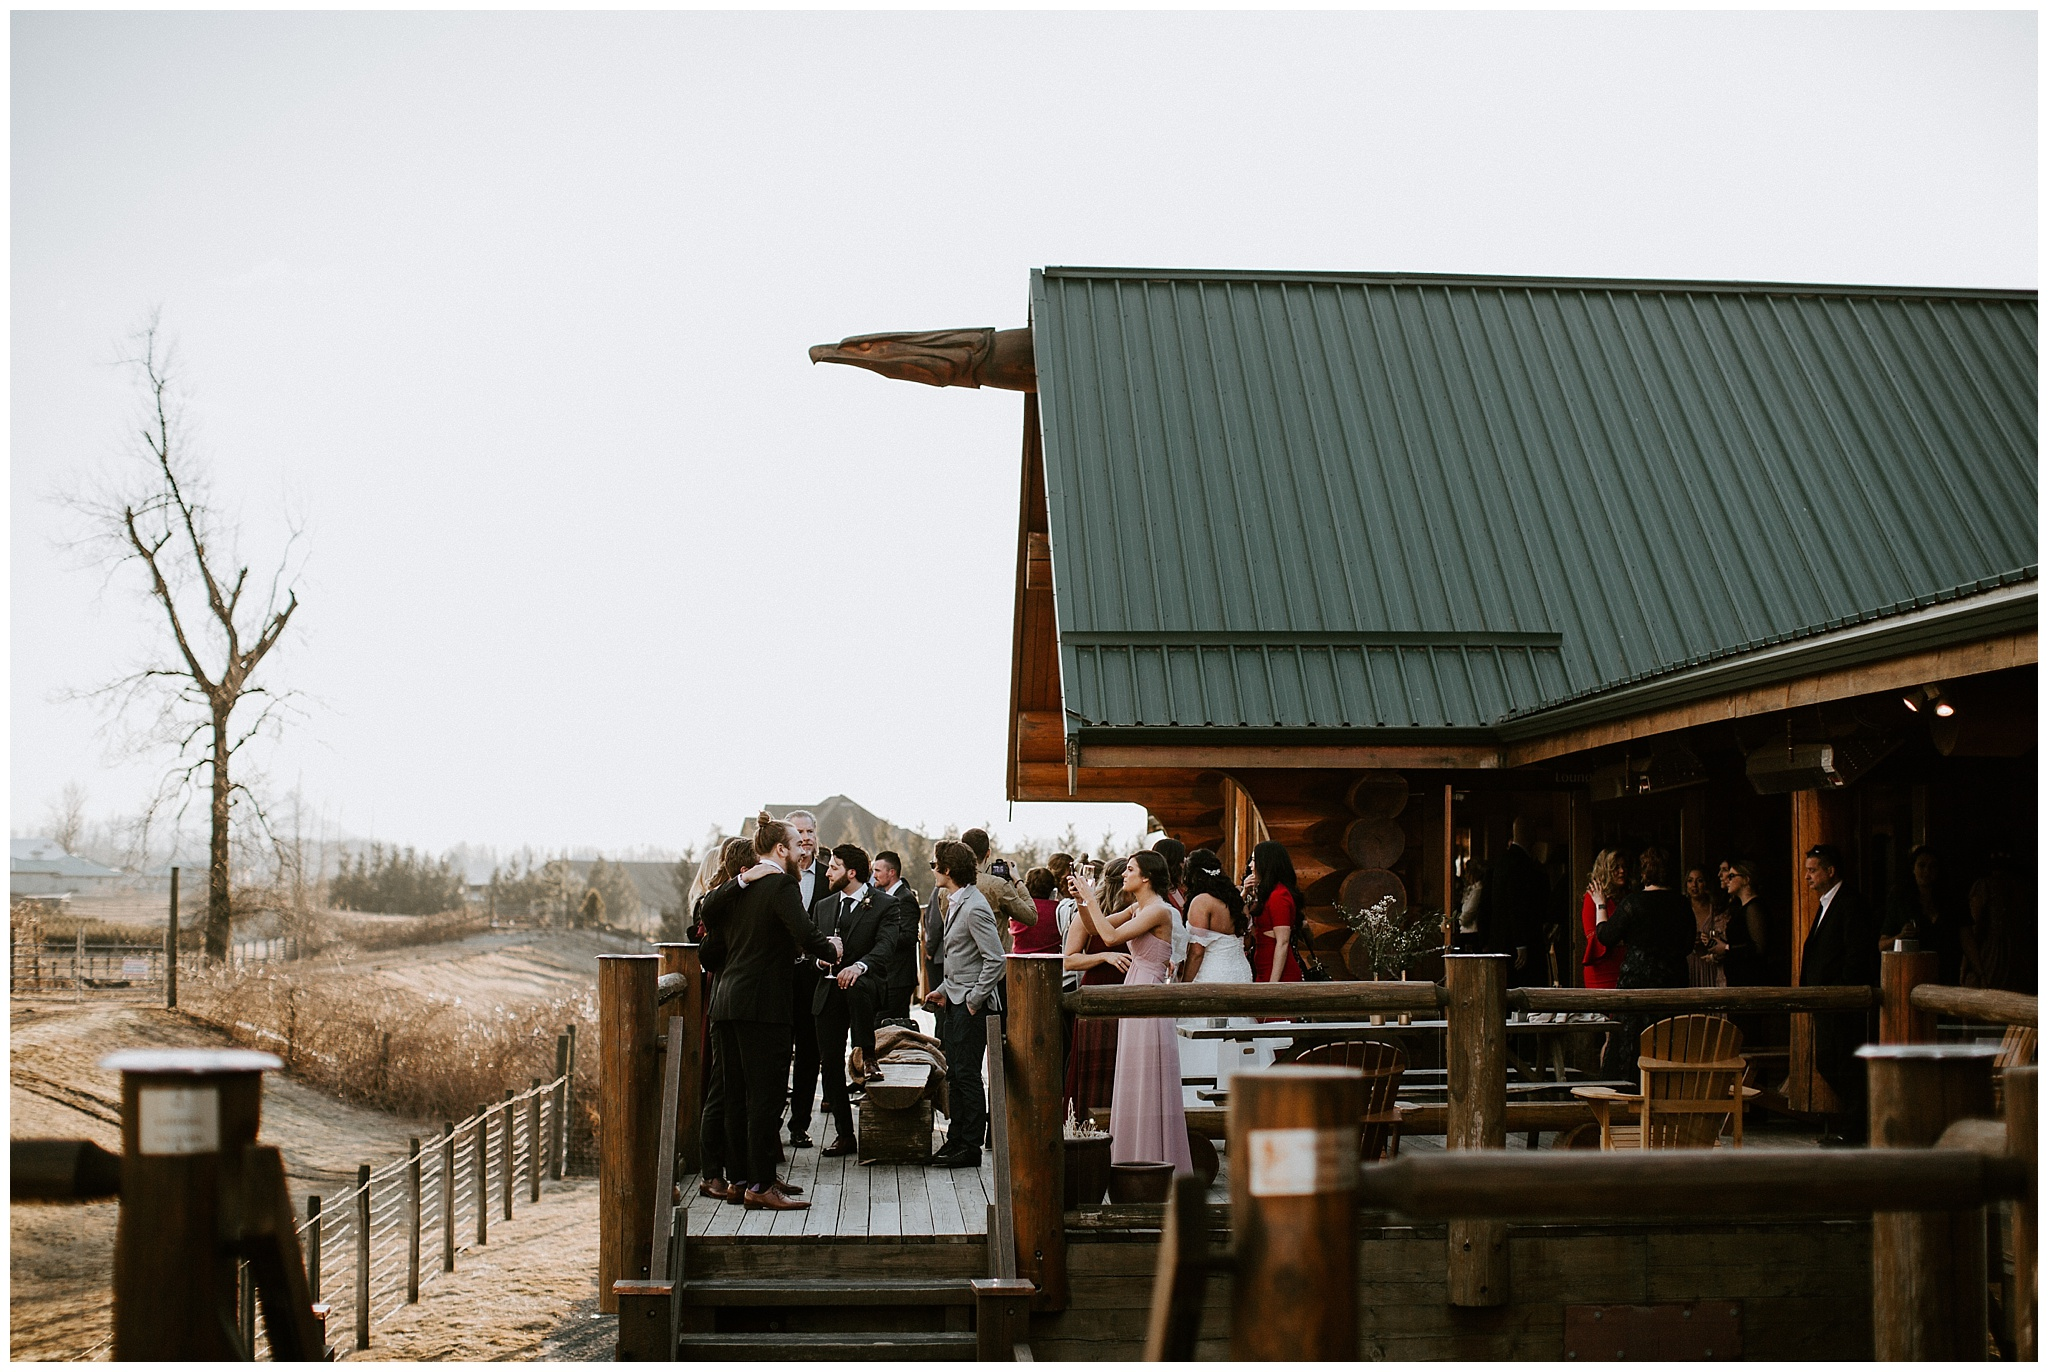 Wedding guests on the deck at the Fraser River Lodge.